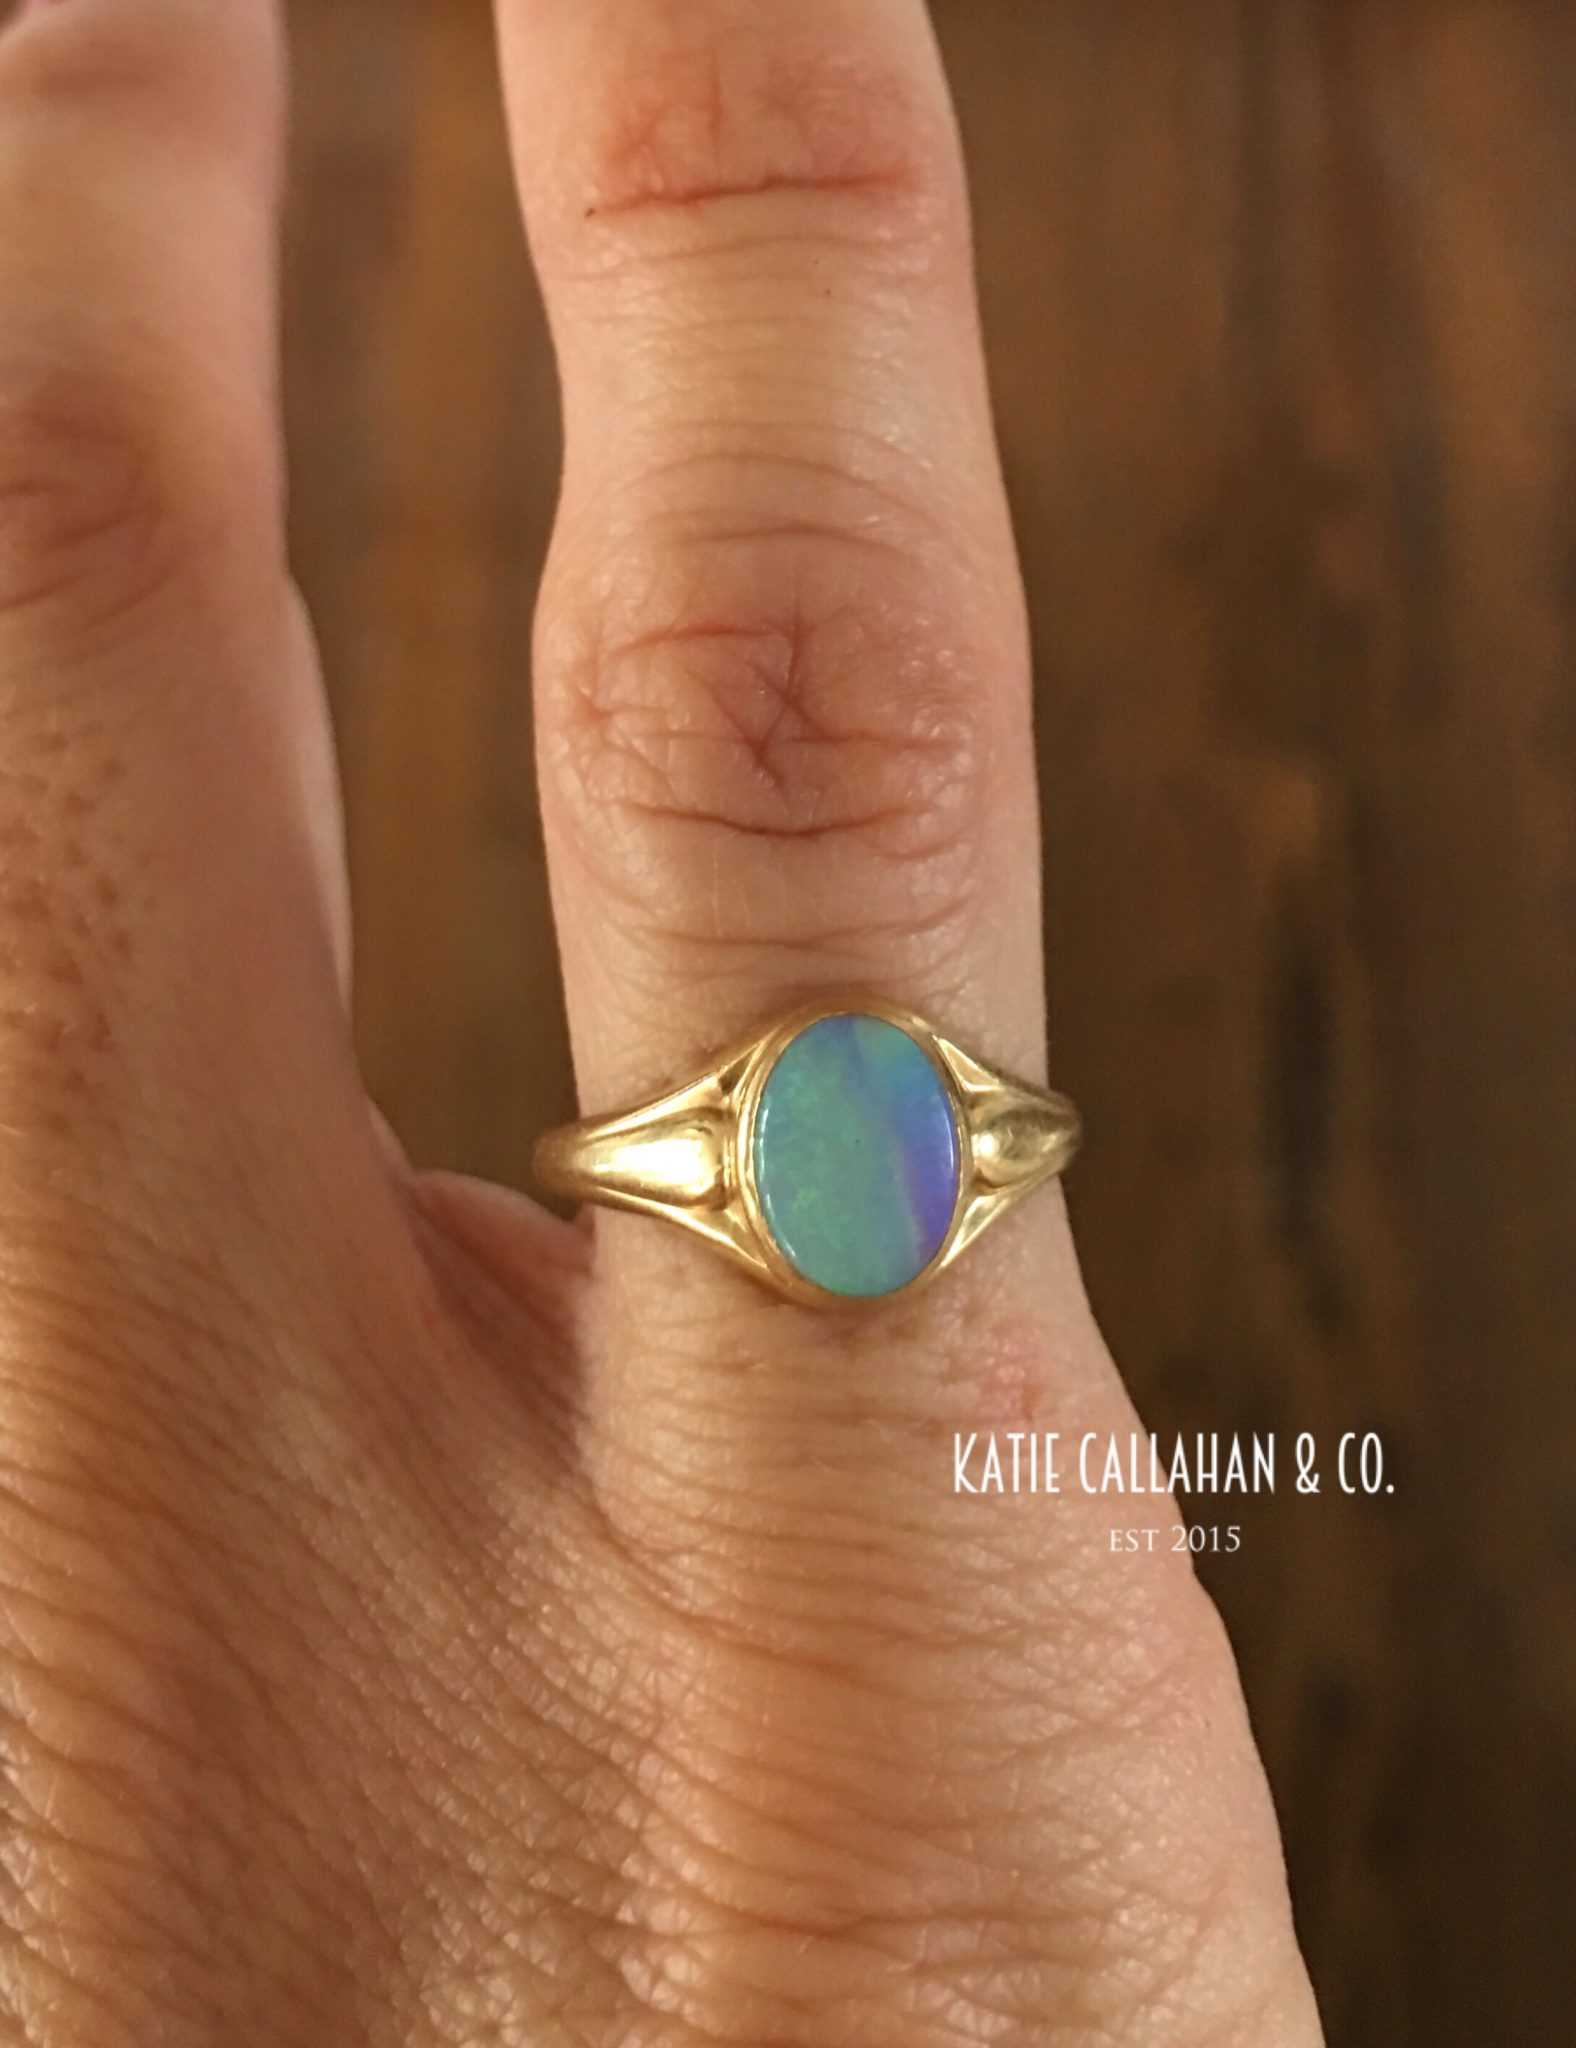 SOLD * Art Deco 10kt Yellow Gold Opal Ring (Antique)